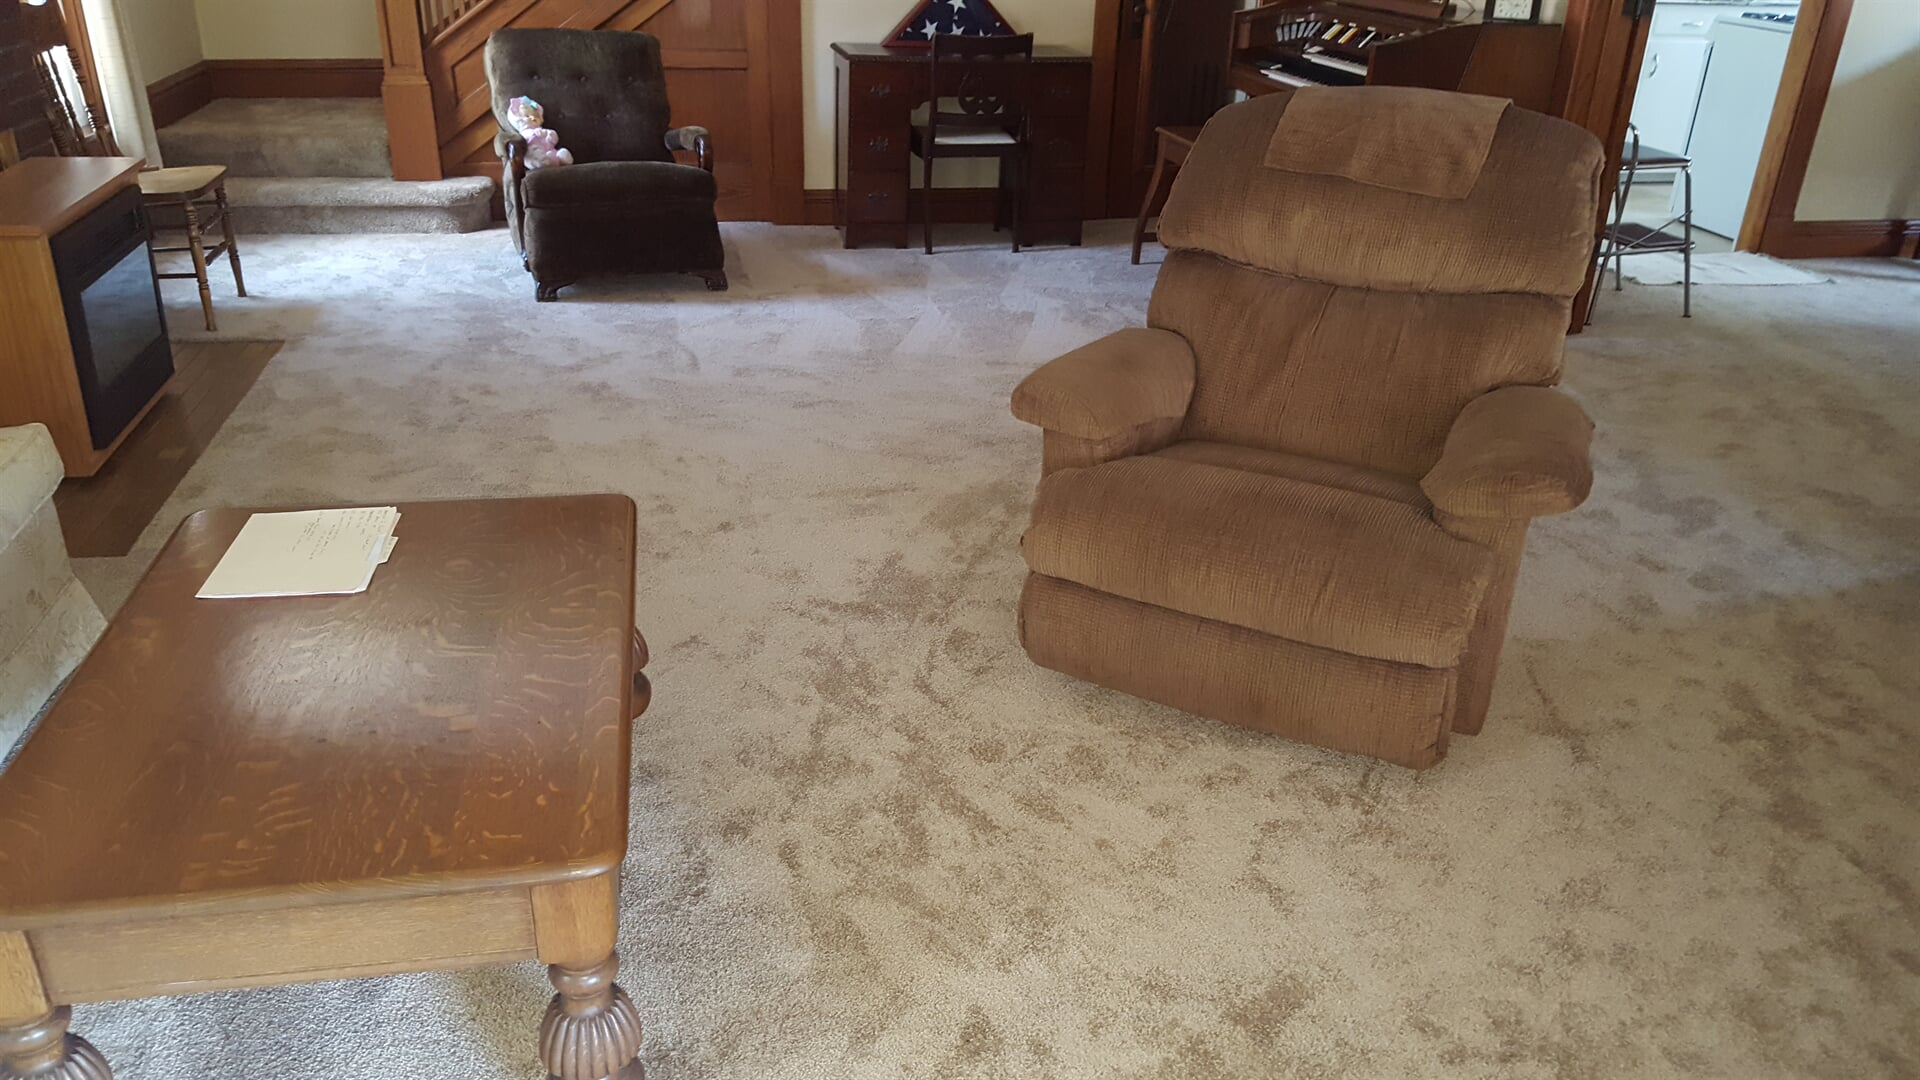 Soft living room carpet in Kankakee, IL from Marchio Tile & Carpet Inc.